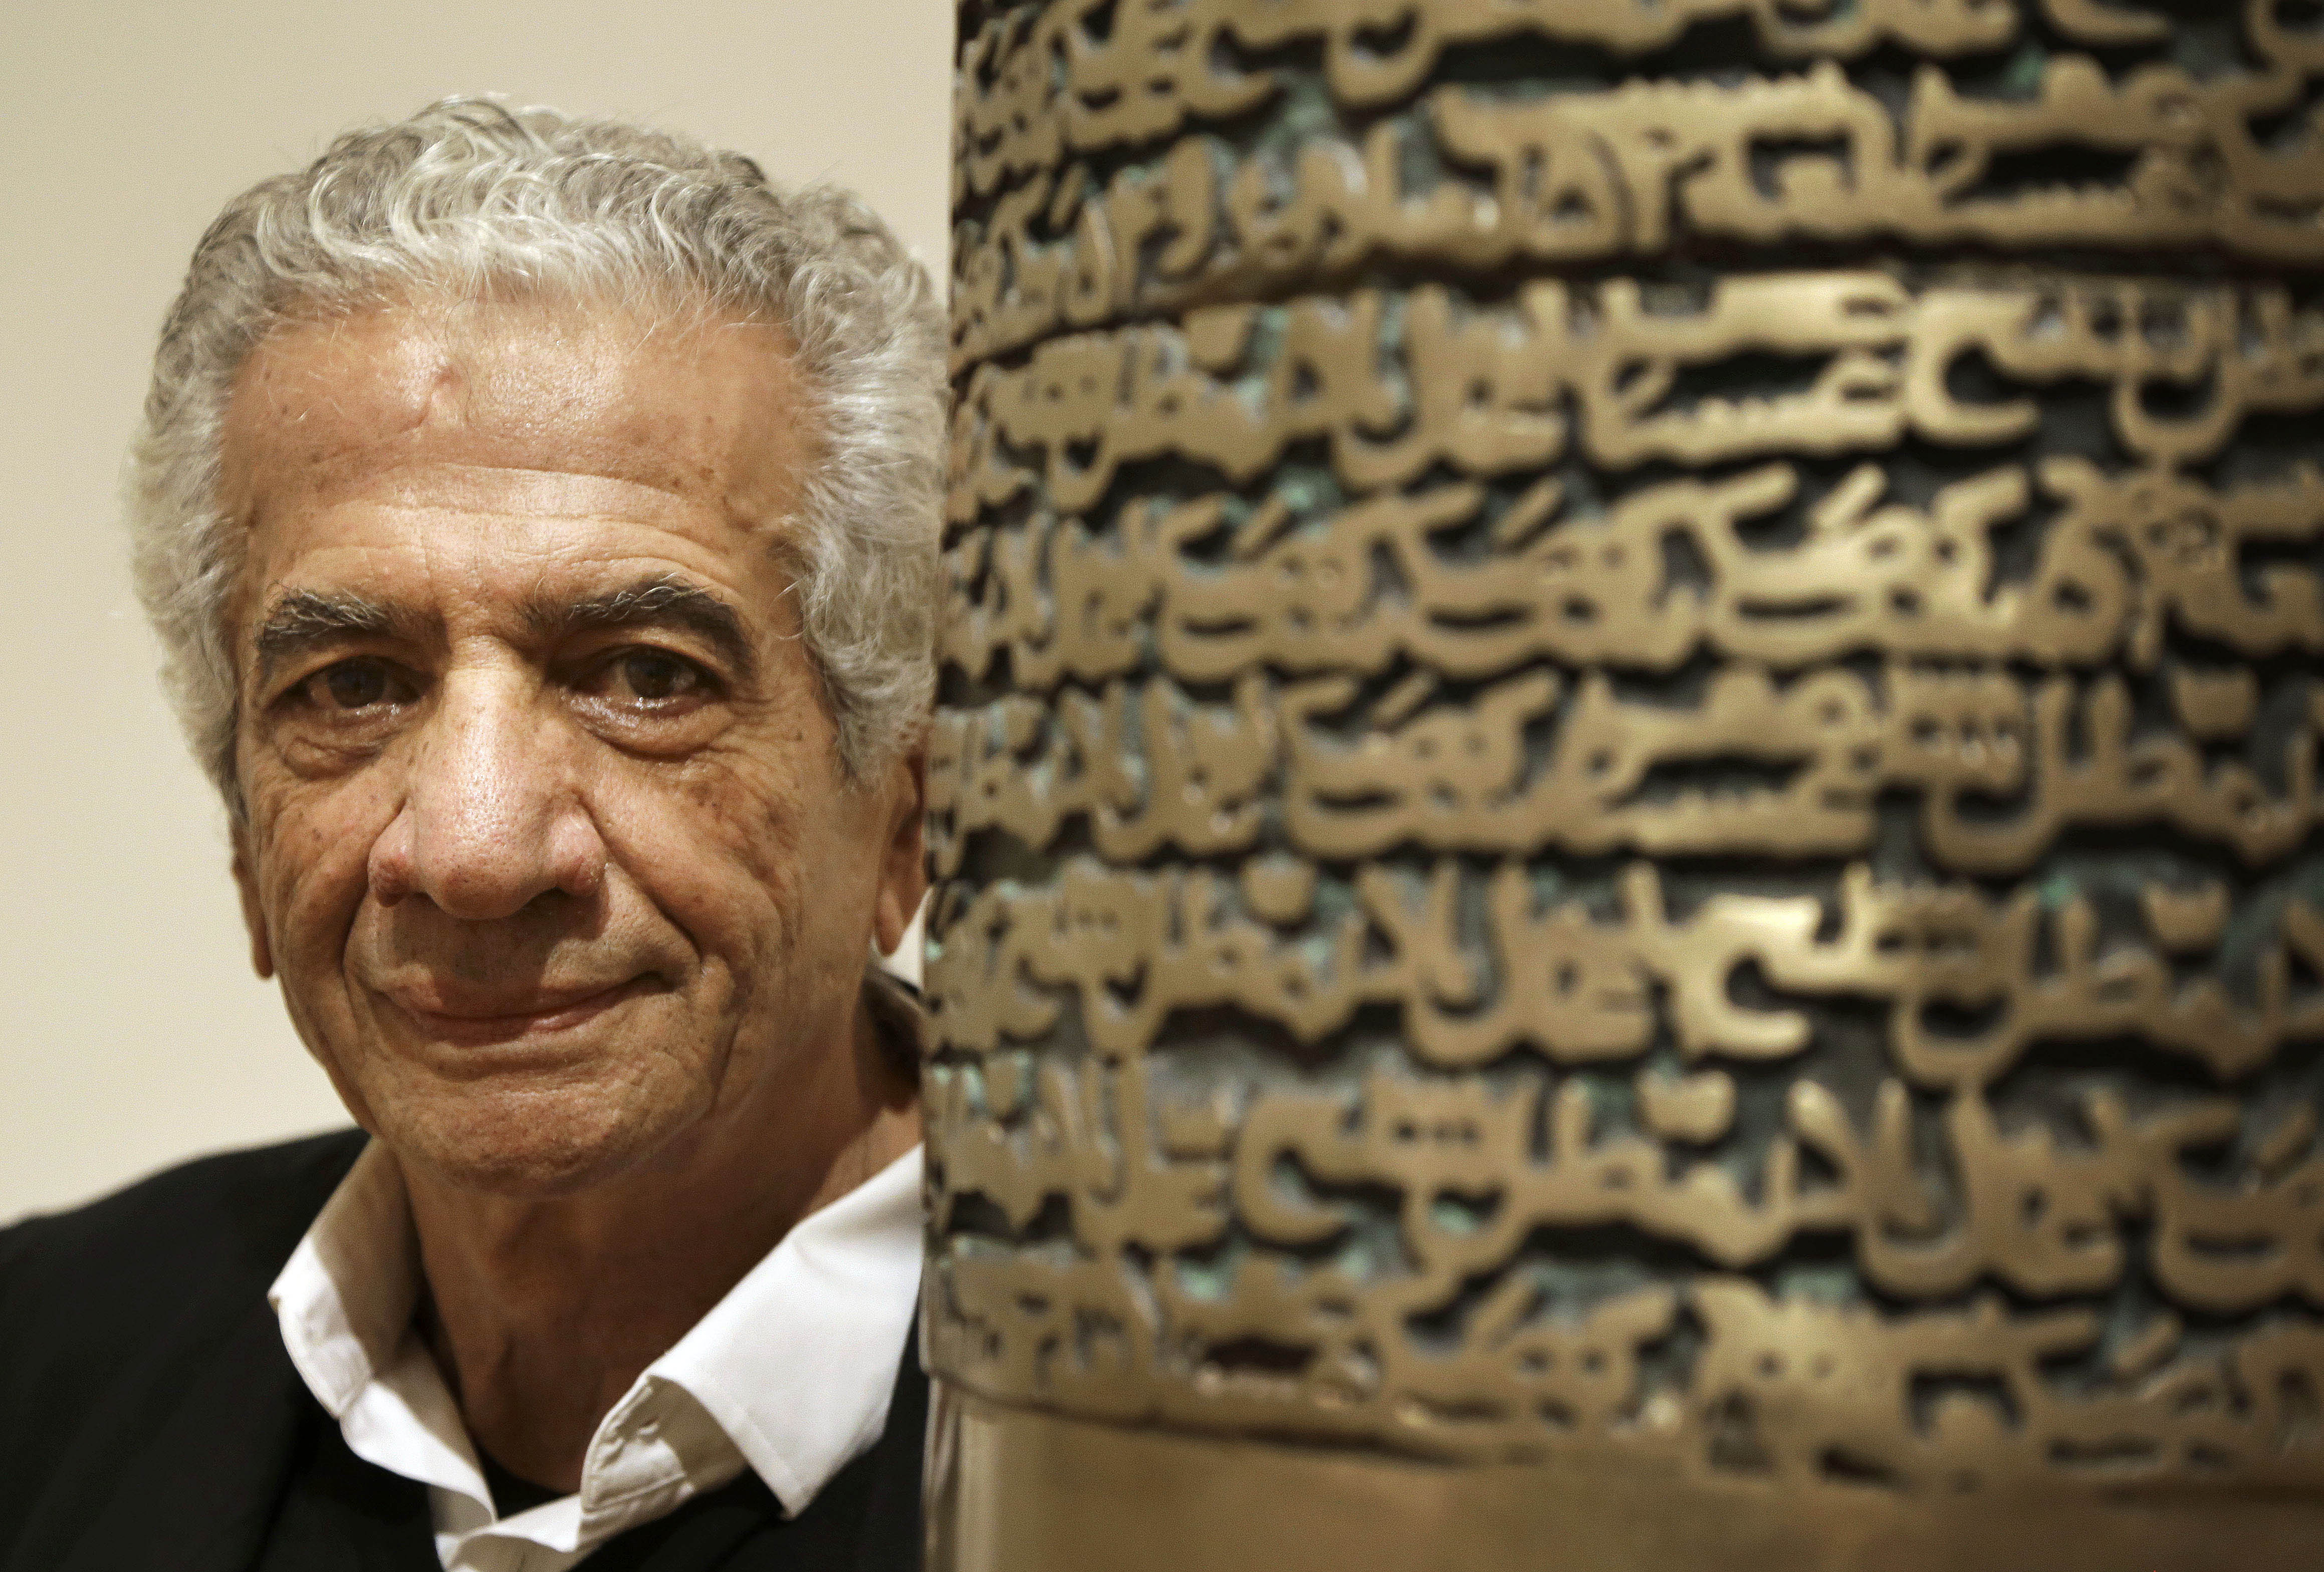 New Documentary Honors Father of Modern Iranian Sculpture